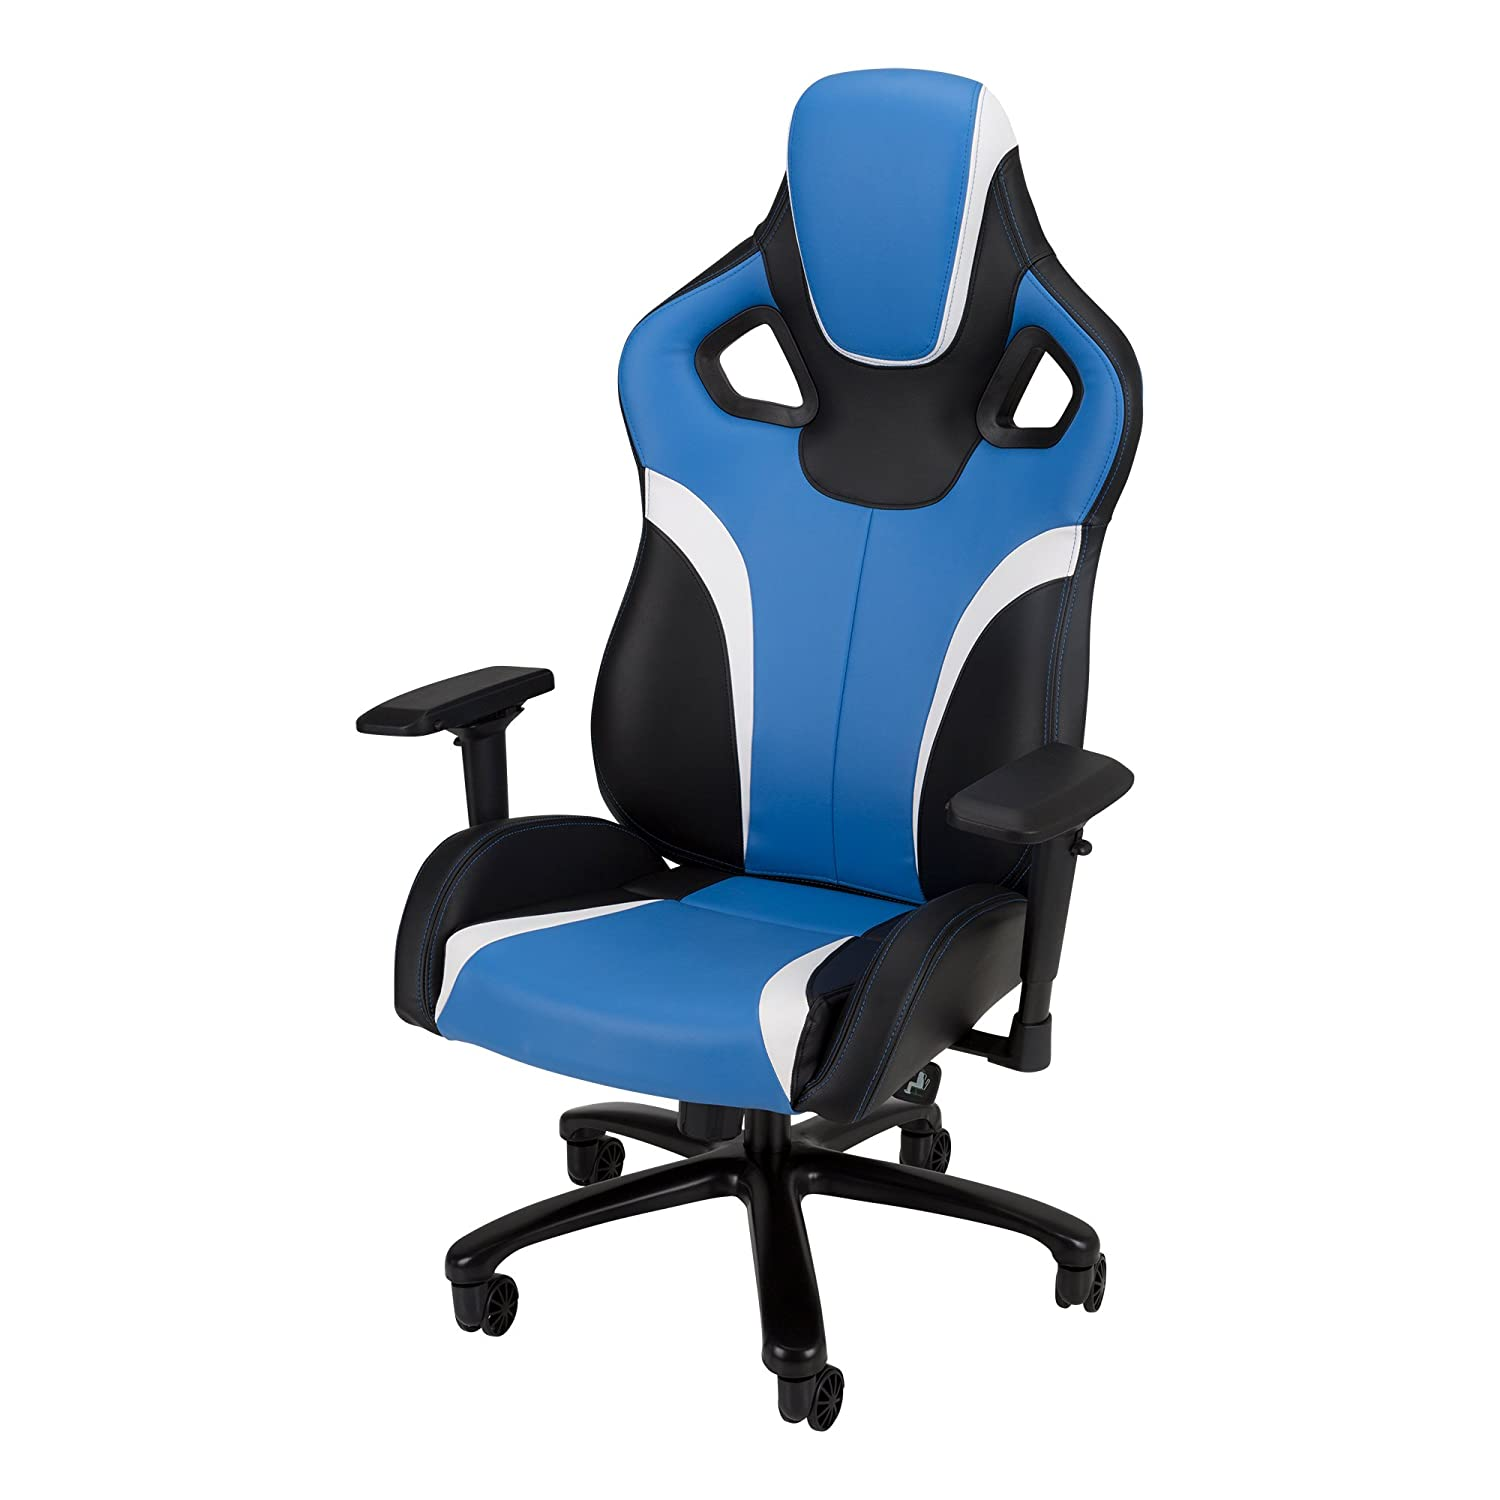 SkyLab Performance Seating ALT NUS1001 SO Galaxy XL Gaming Chair Big and Tall Size Blue Black White Amazon Business Industry & Science